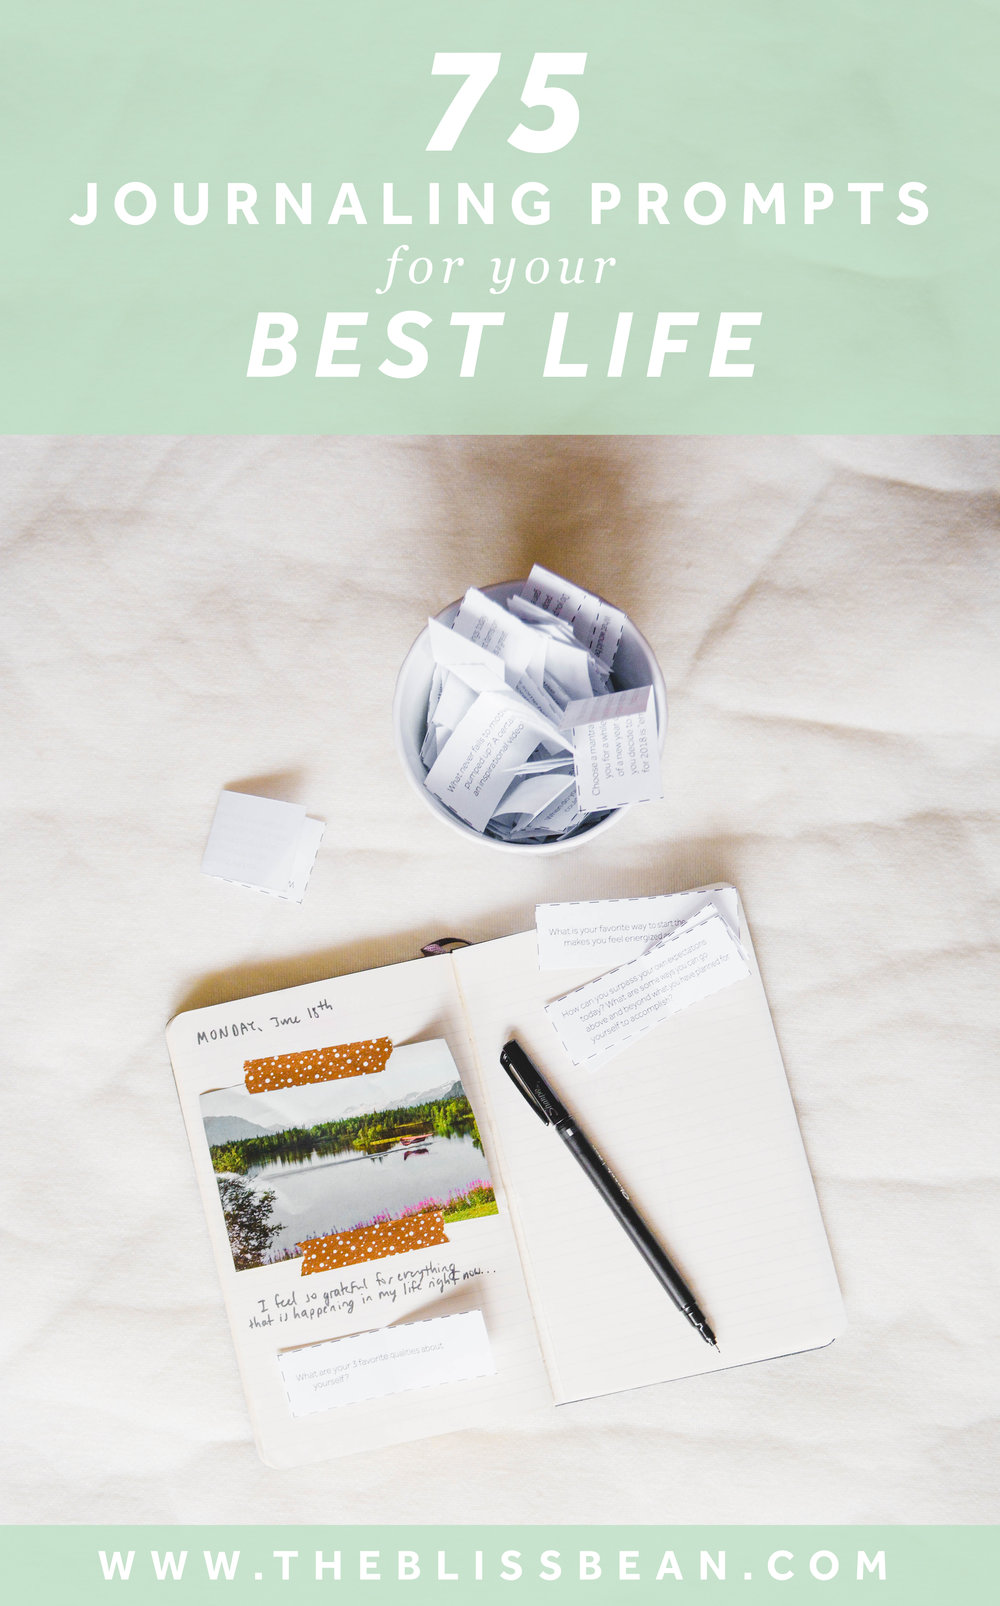 Cover Image - 75 Journaling Prompts for Your Best Life.jpg